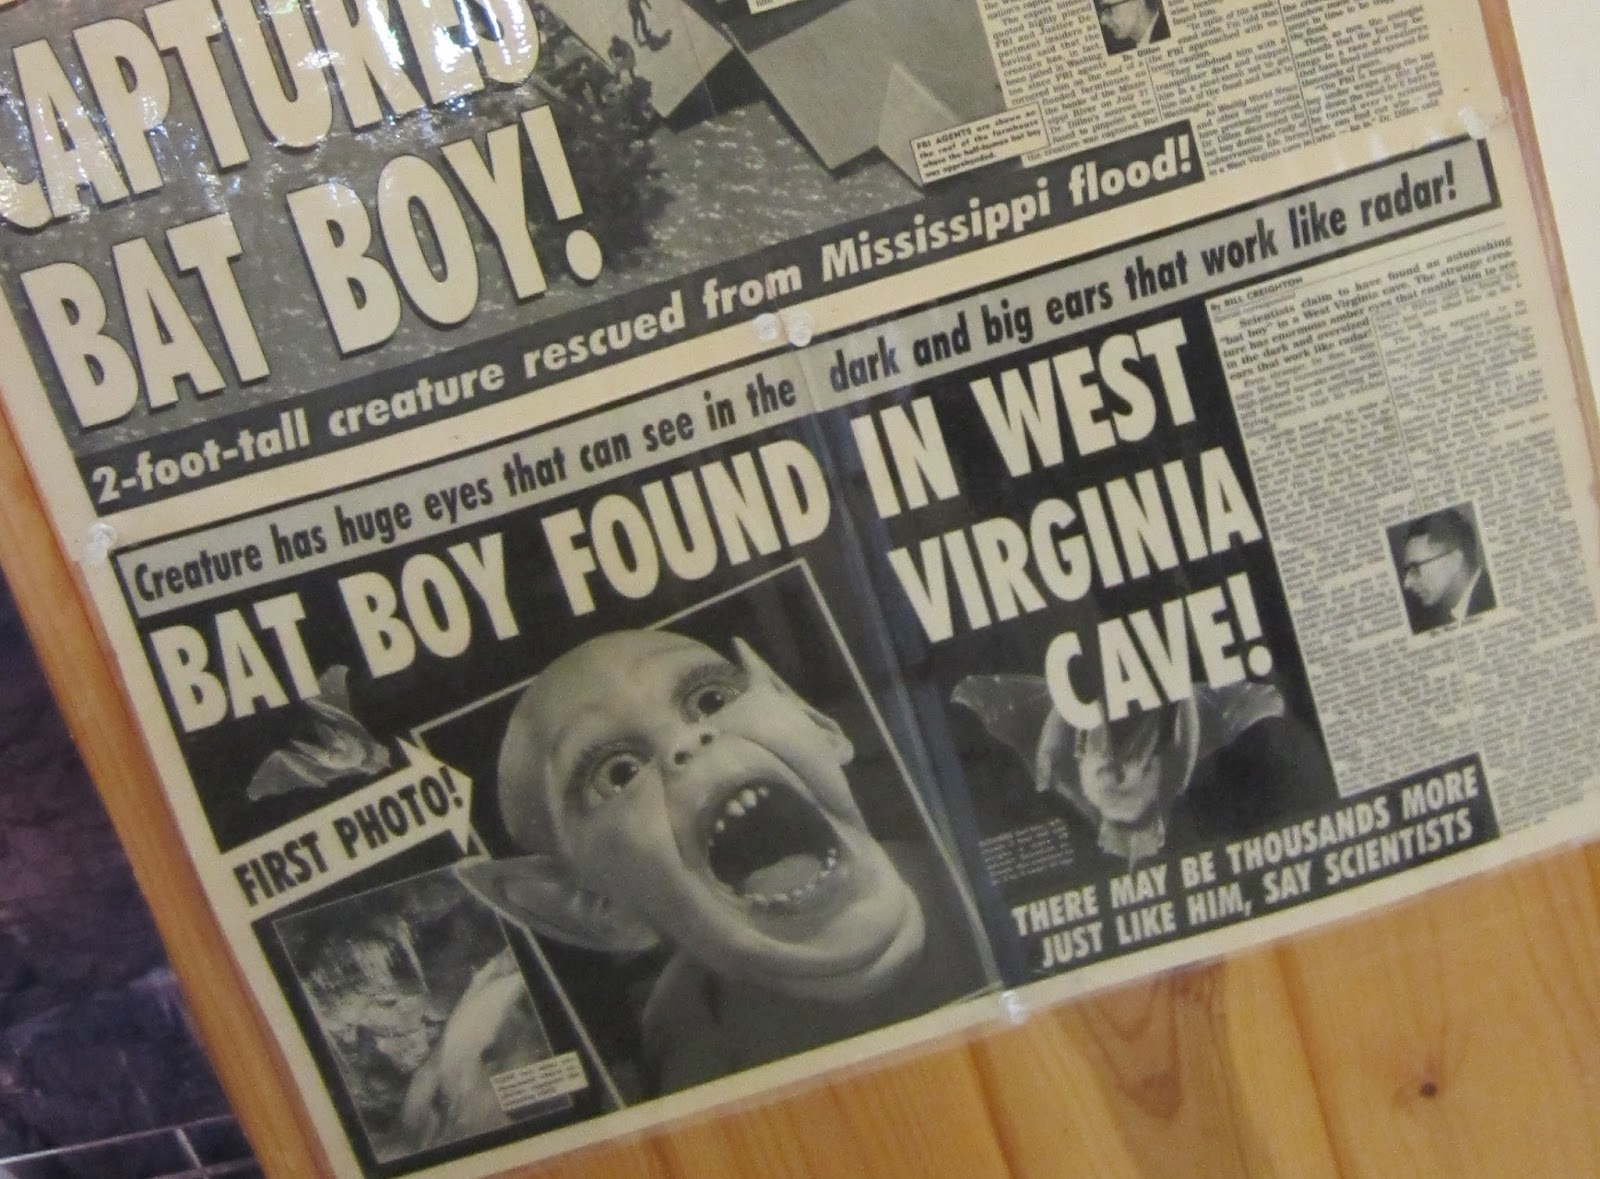 The startling discoveries did not end there. The Lost World Caverns was revealed to be the official home of that darling of the Weekly World News, BAT BOY!